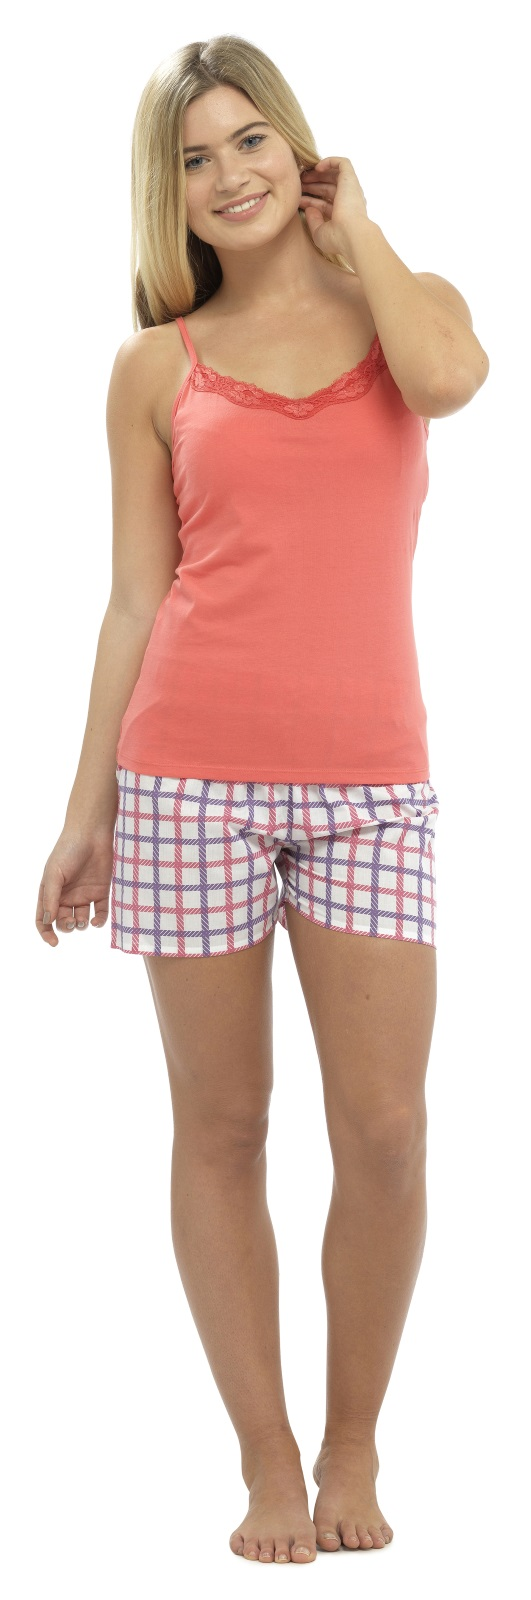 Find great deals on eBay for womens pajamas short sets. Shop with confidence.